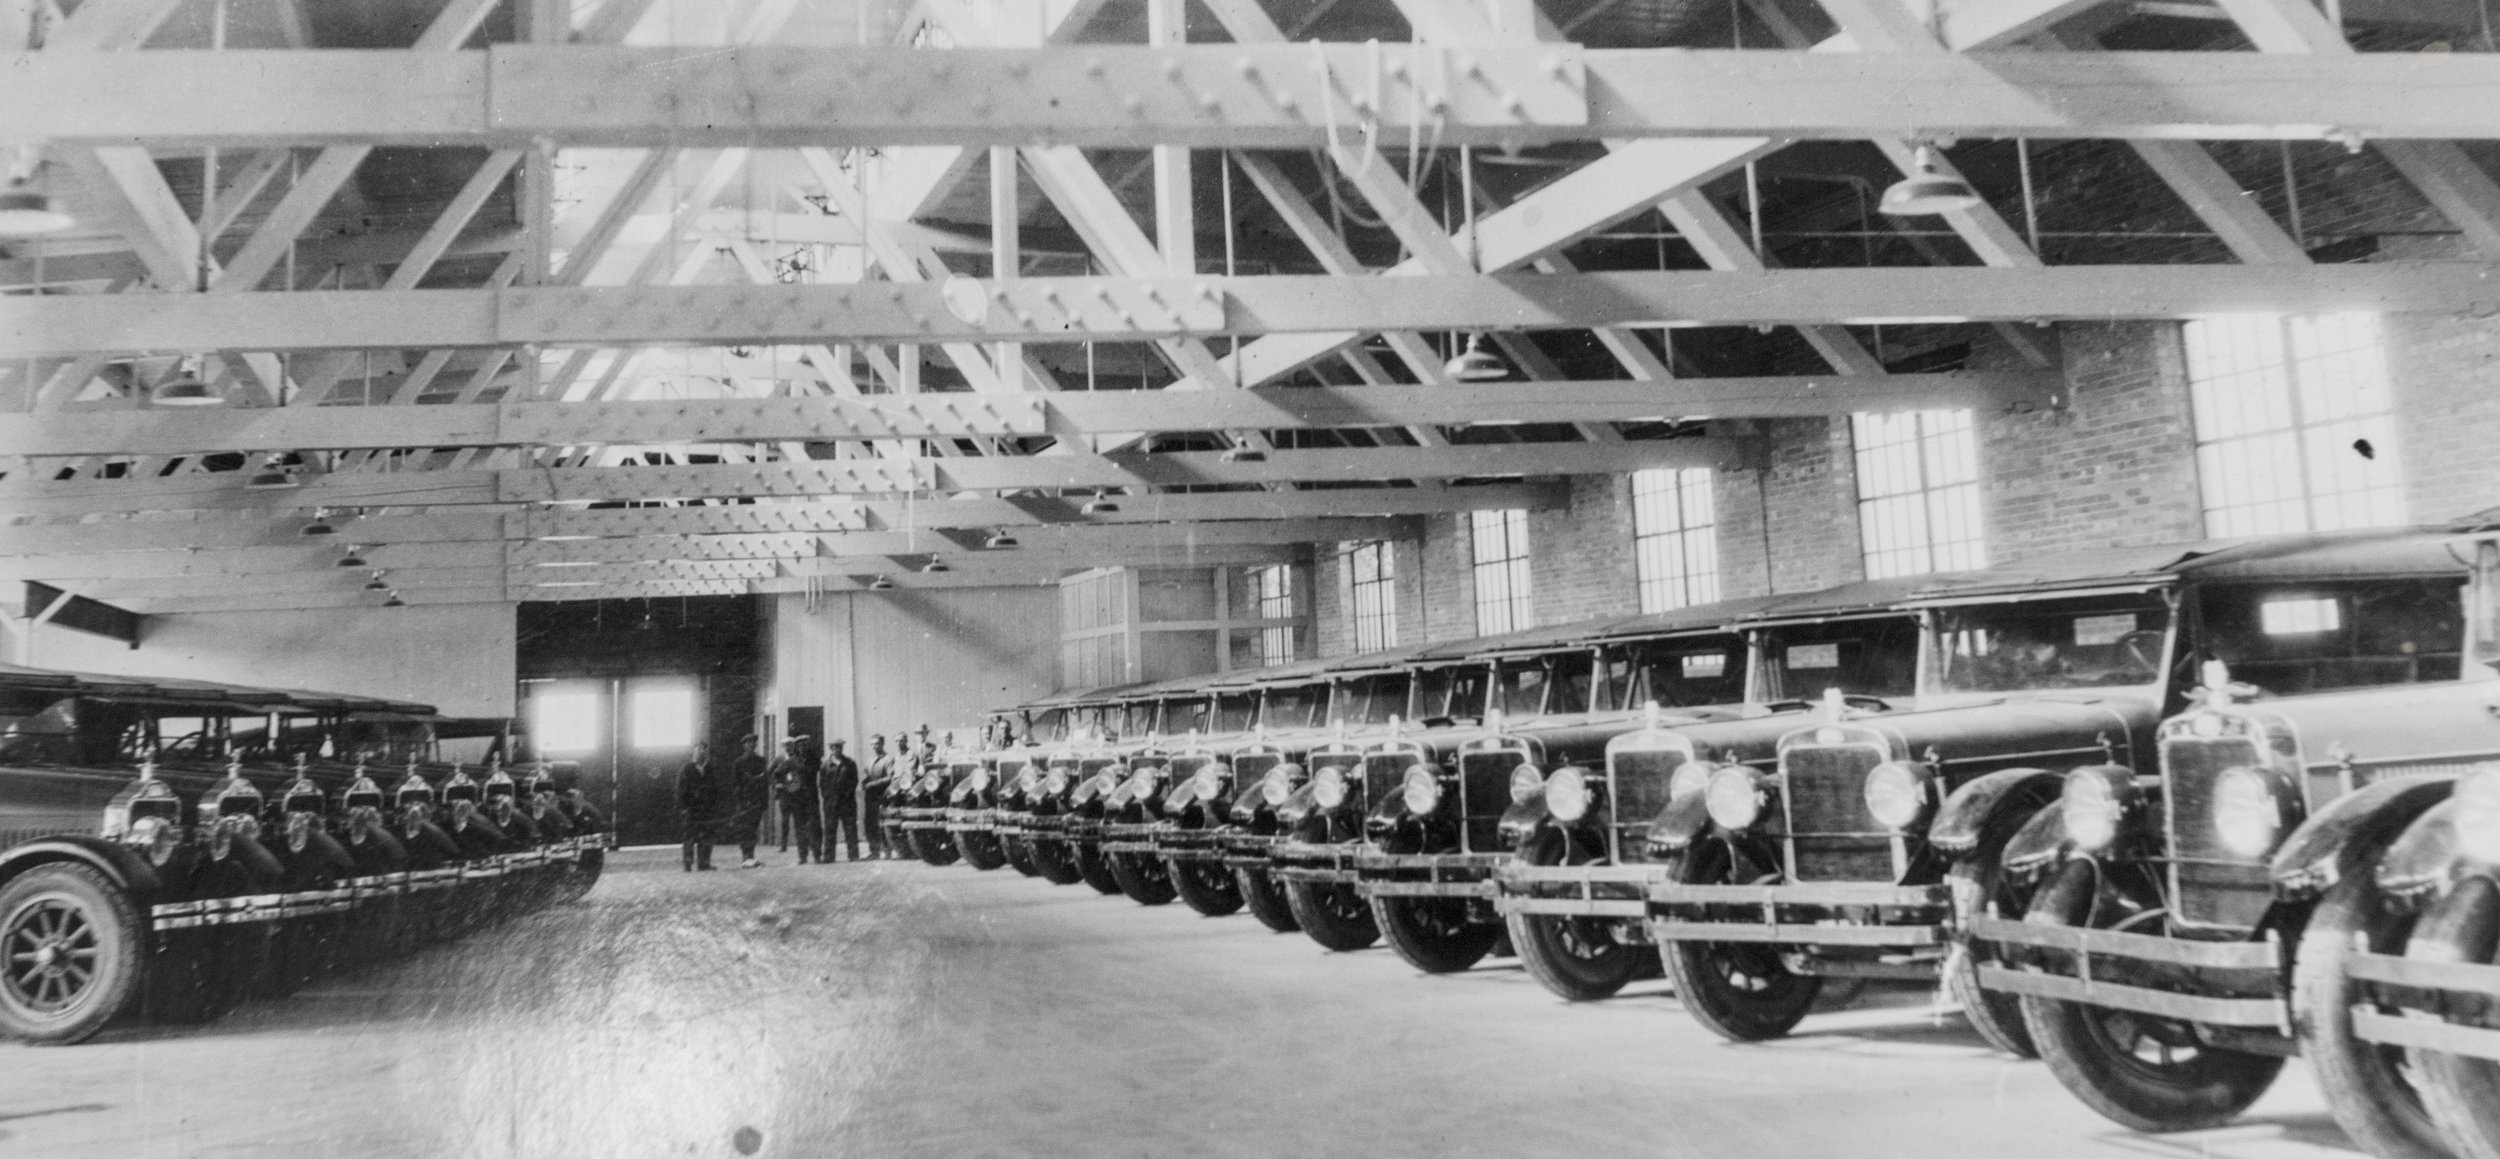 Original Photo of the Union Pacific National Parks Garage around the 1930's